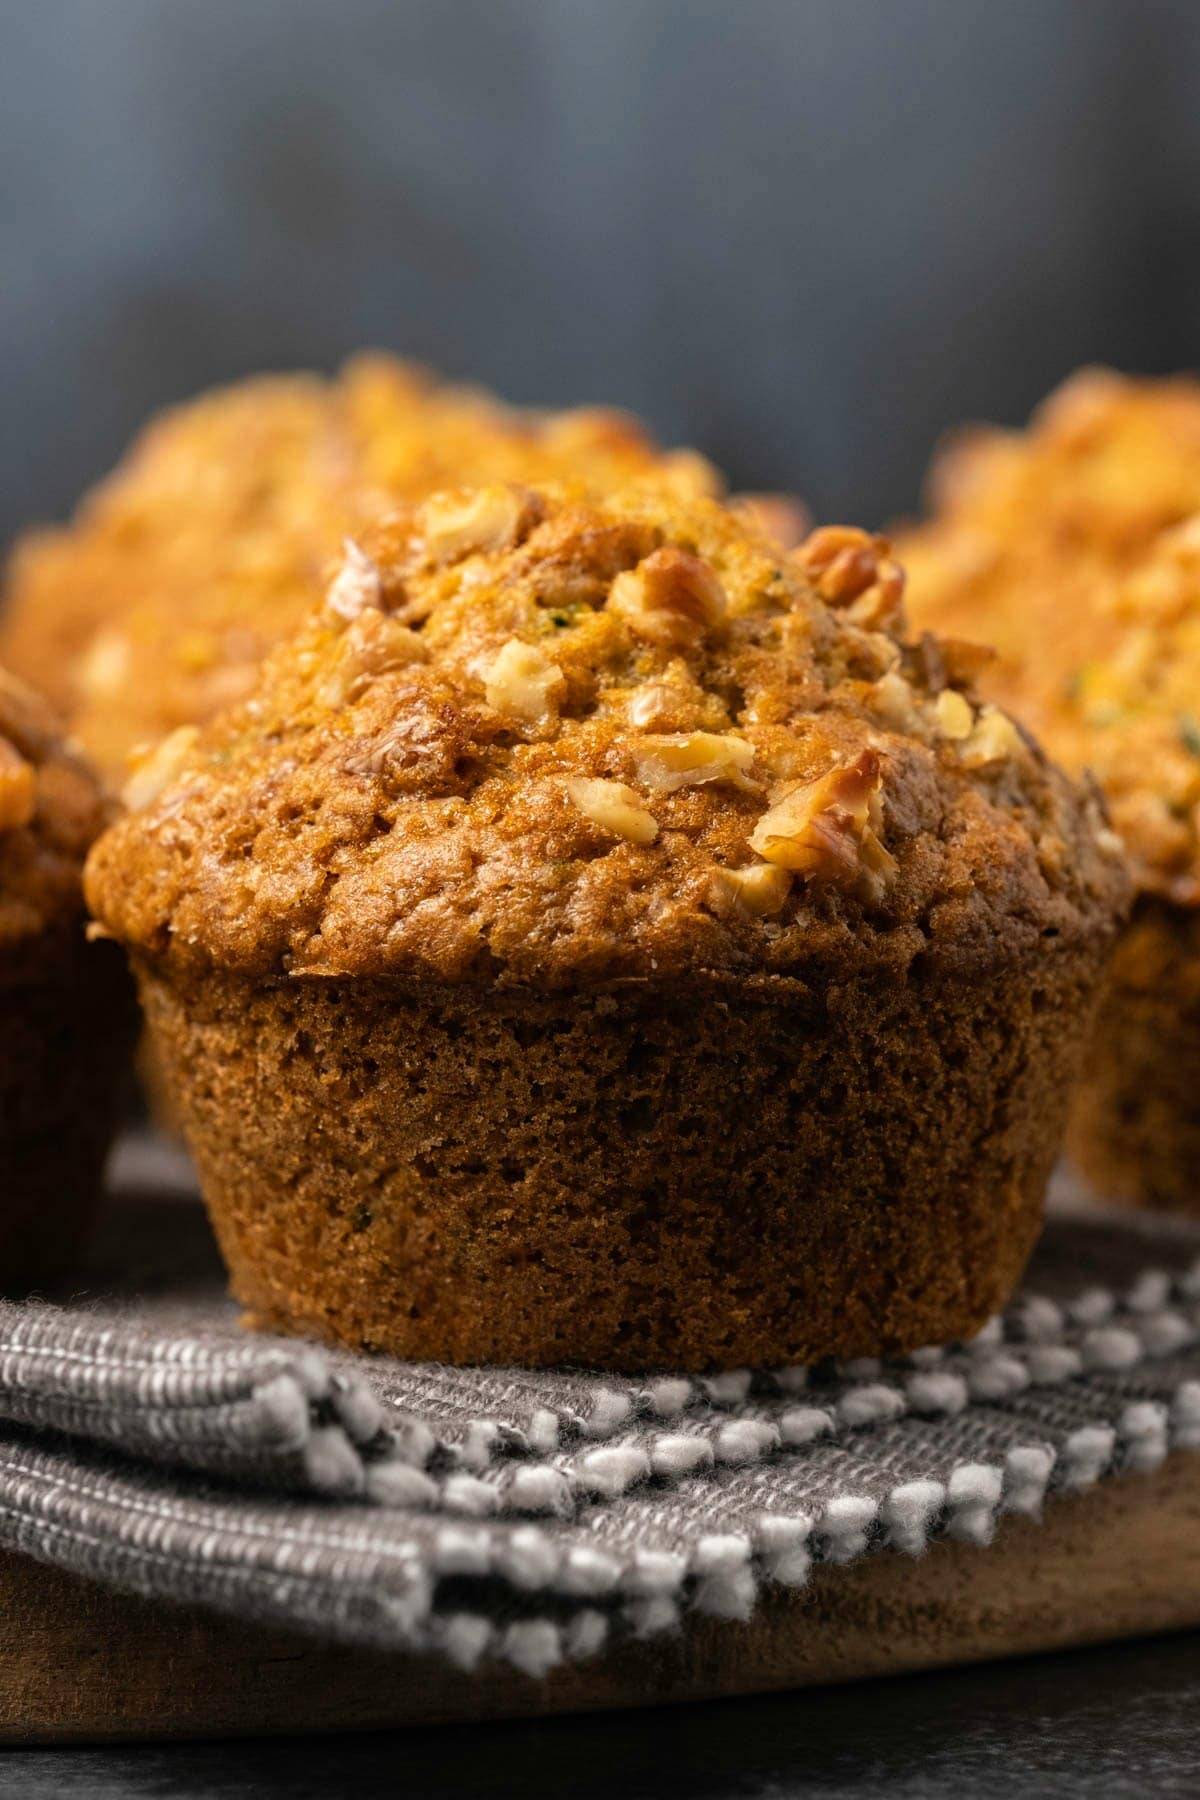 Zucchini muffin on a gray and white cloth.